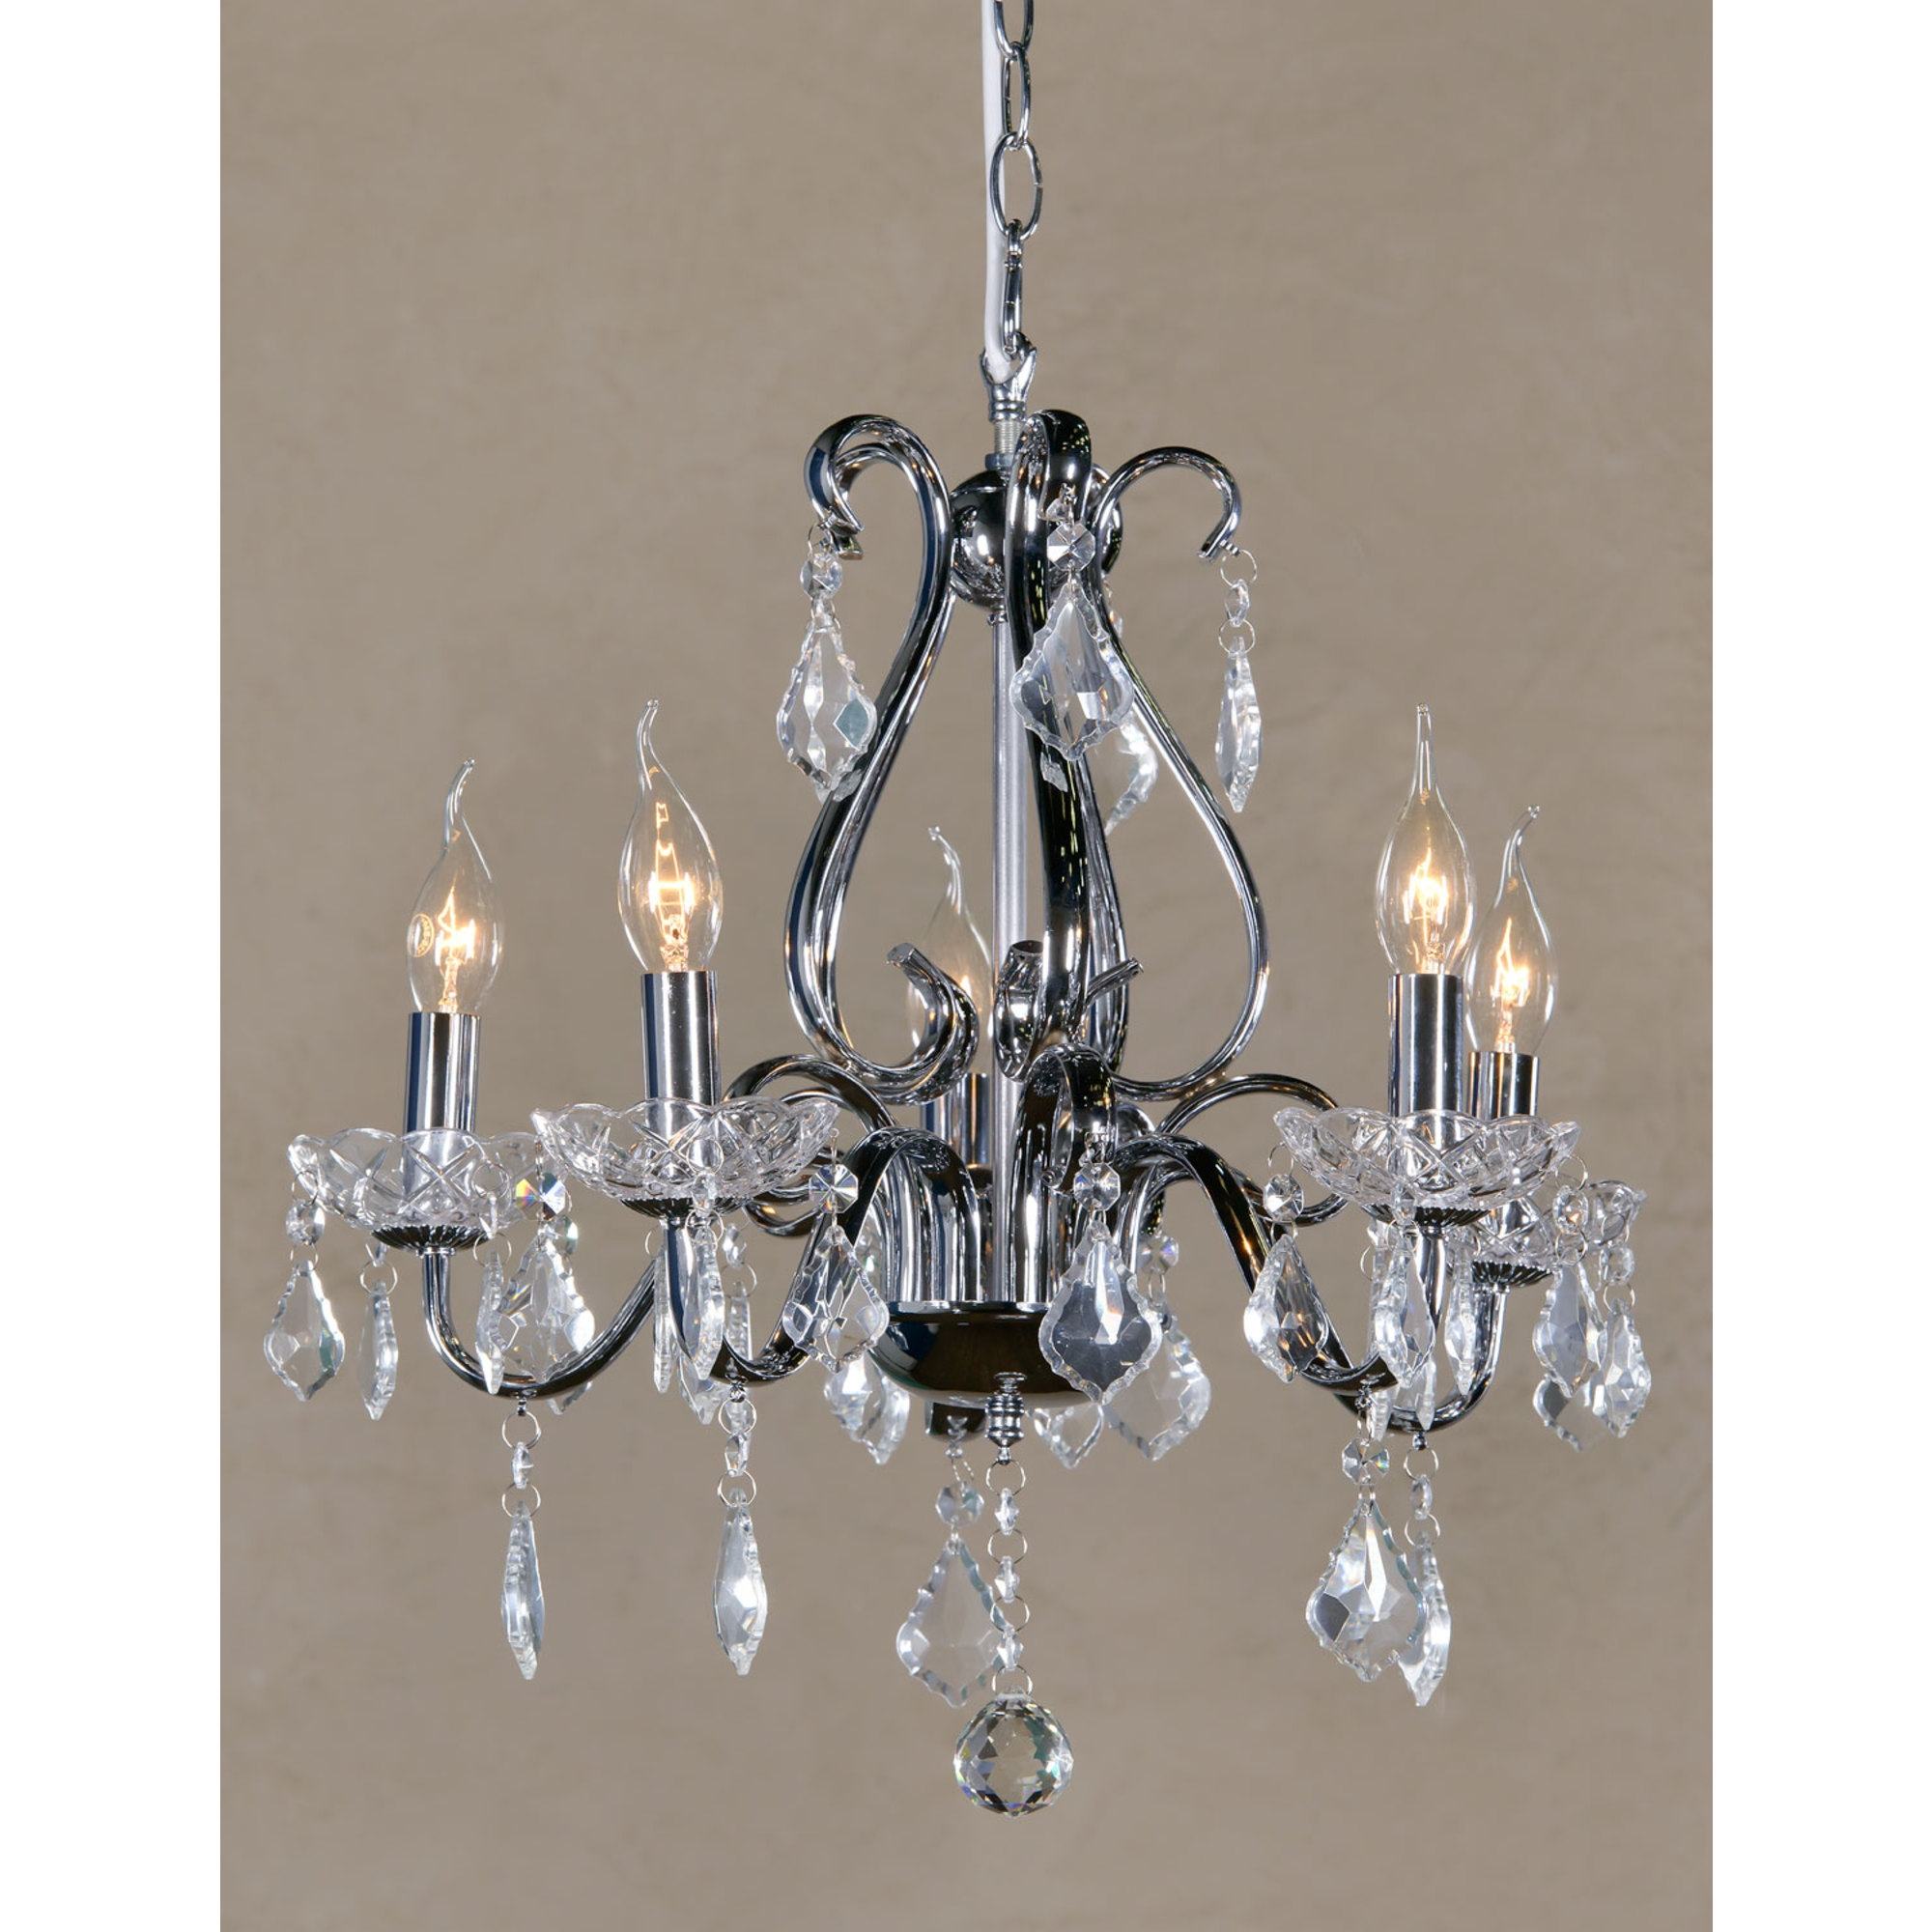 Vintage 5 Light Chandelier - Chrome and Clear